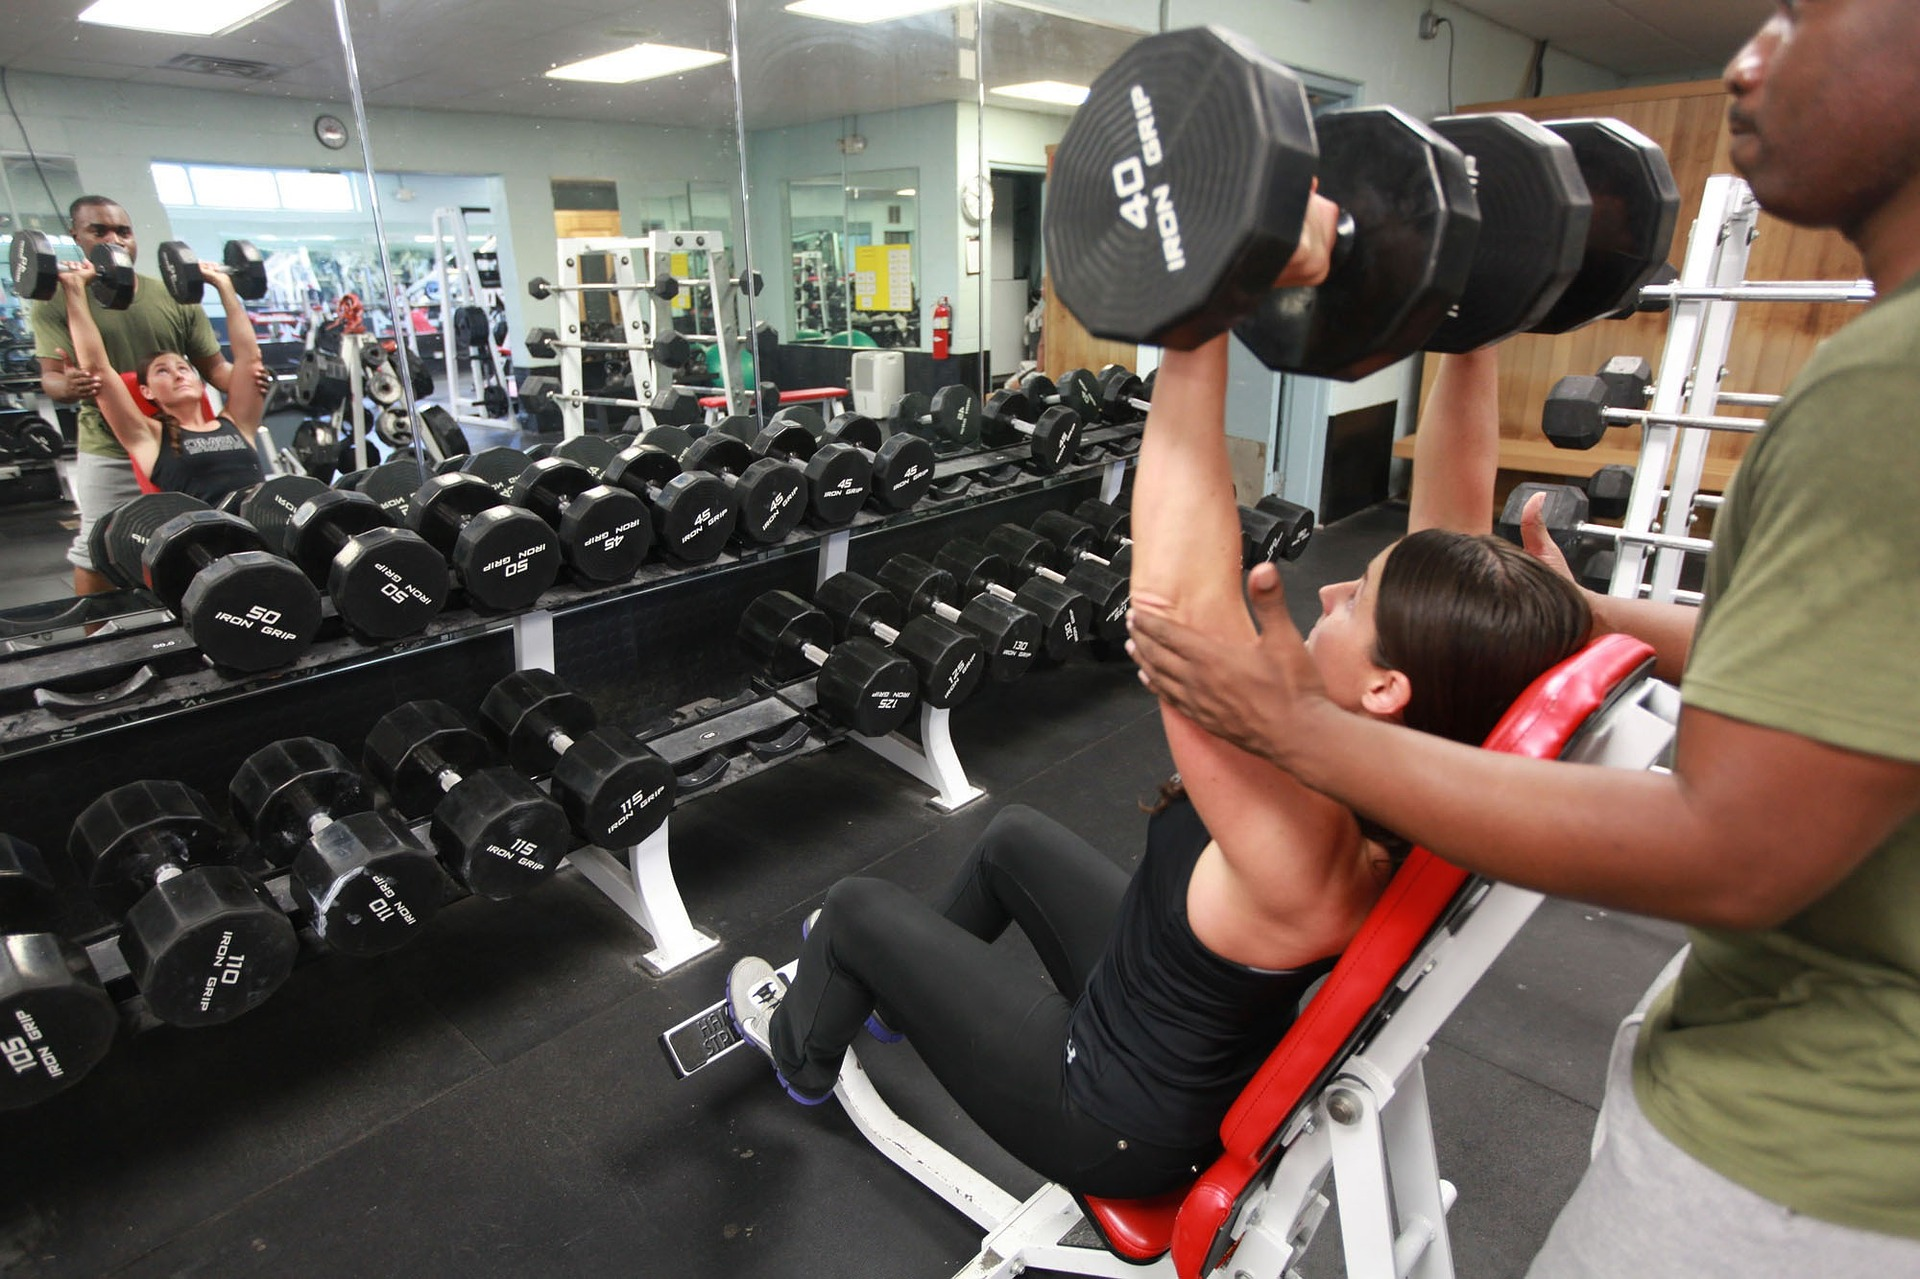 10 Great Gyms In Delray Beach Fl Where You Can Work On Your Beach Body